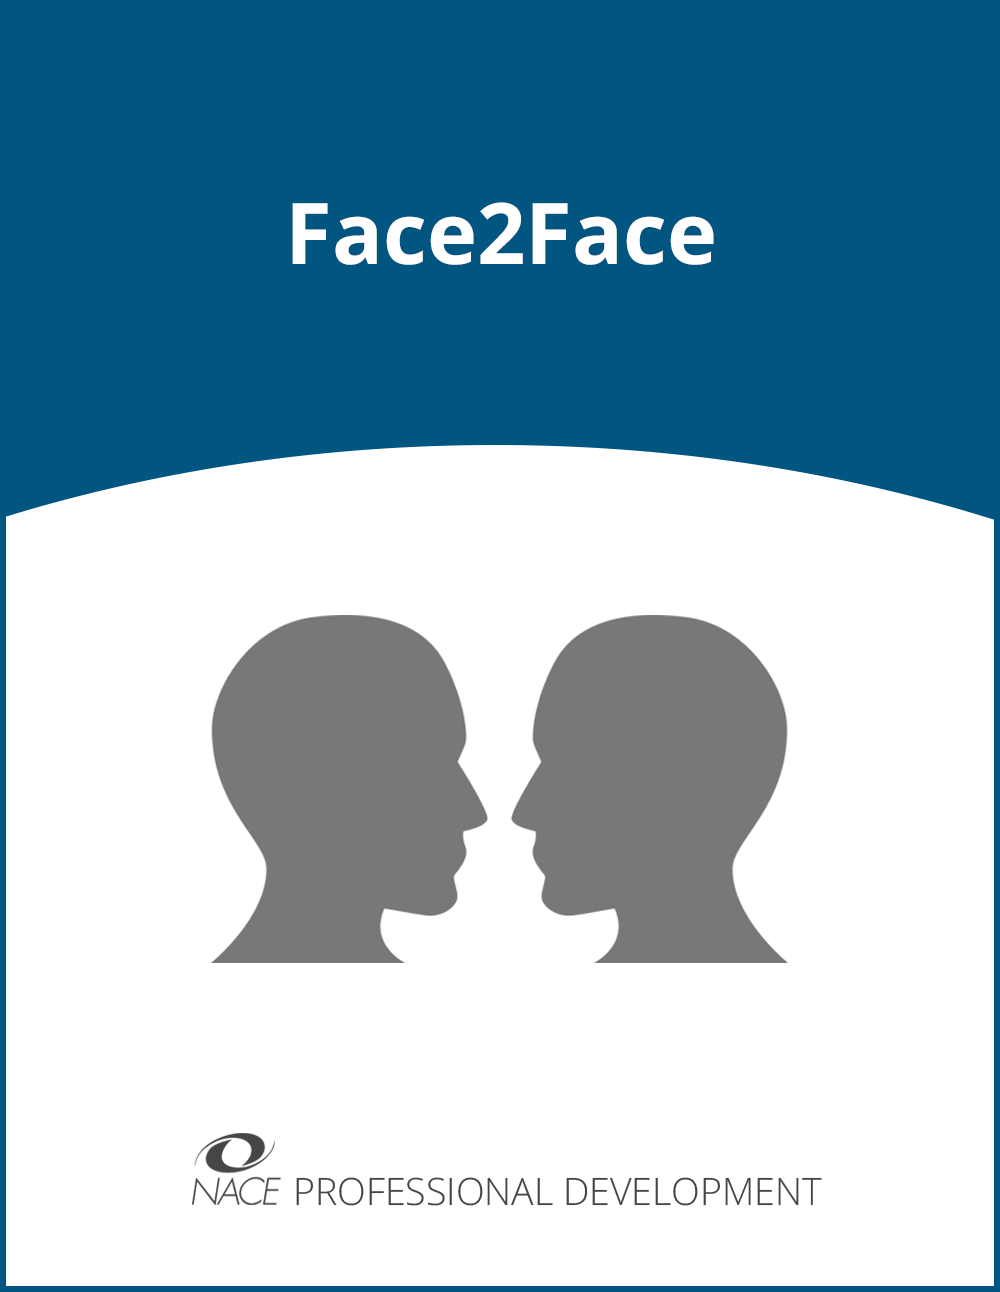 Face2Face: New York, NY